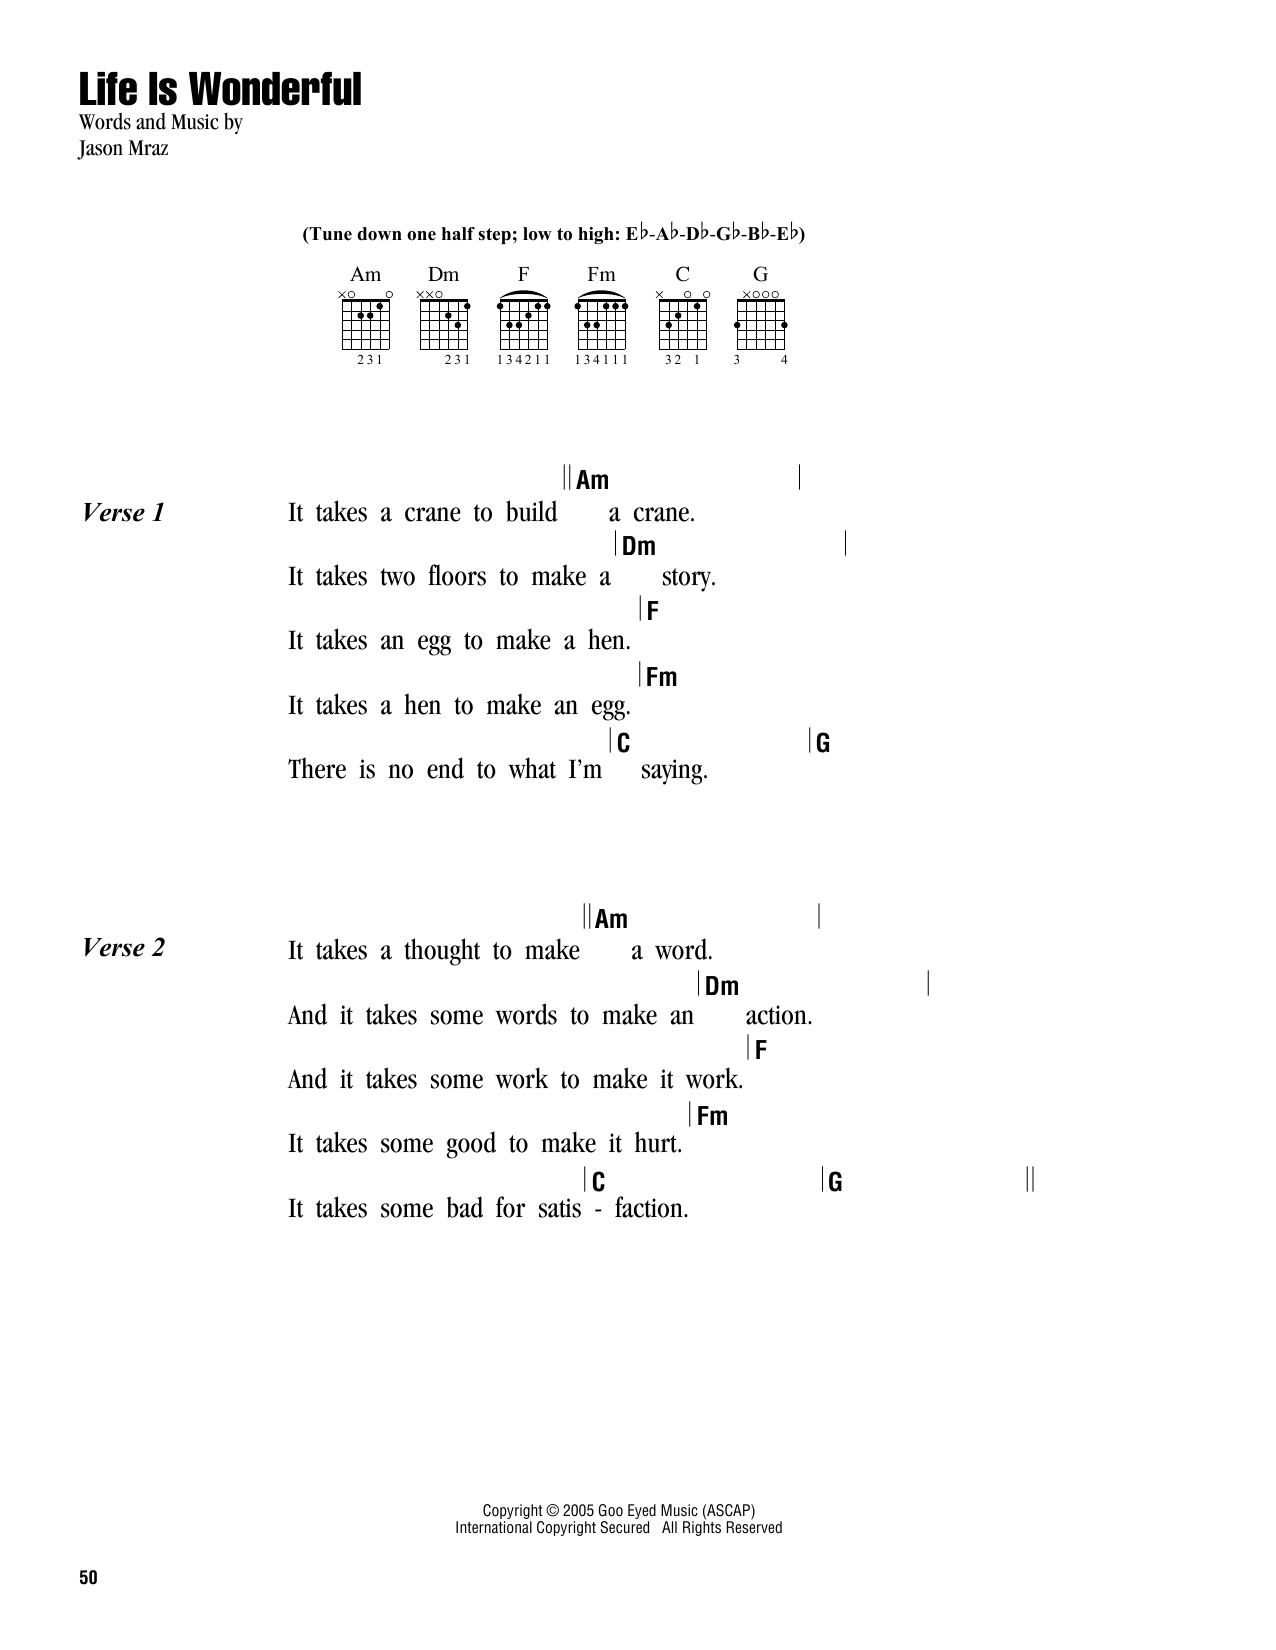 Life is wonderful sheet music by jason mraz lyrics chords 162831 jason mraz life is wonderful lyrics chords hexwebz Image collections